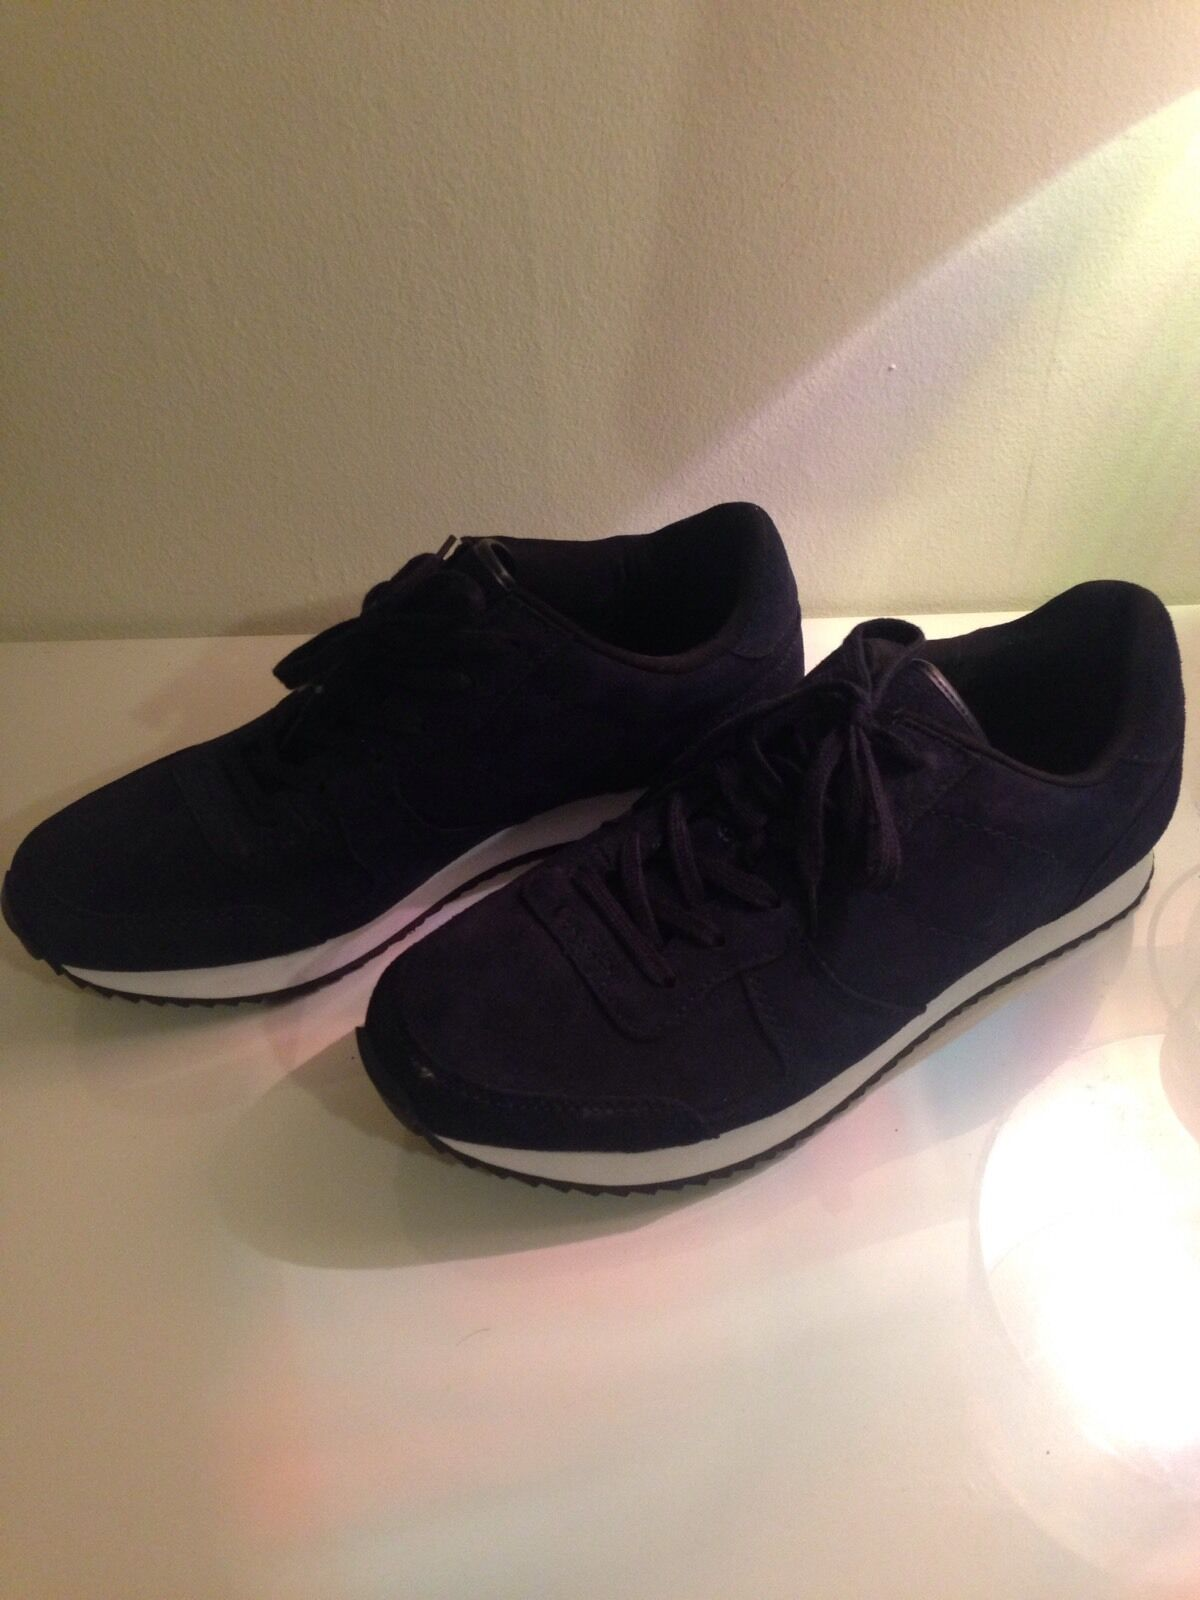 Gap Men's shoes Size 11